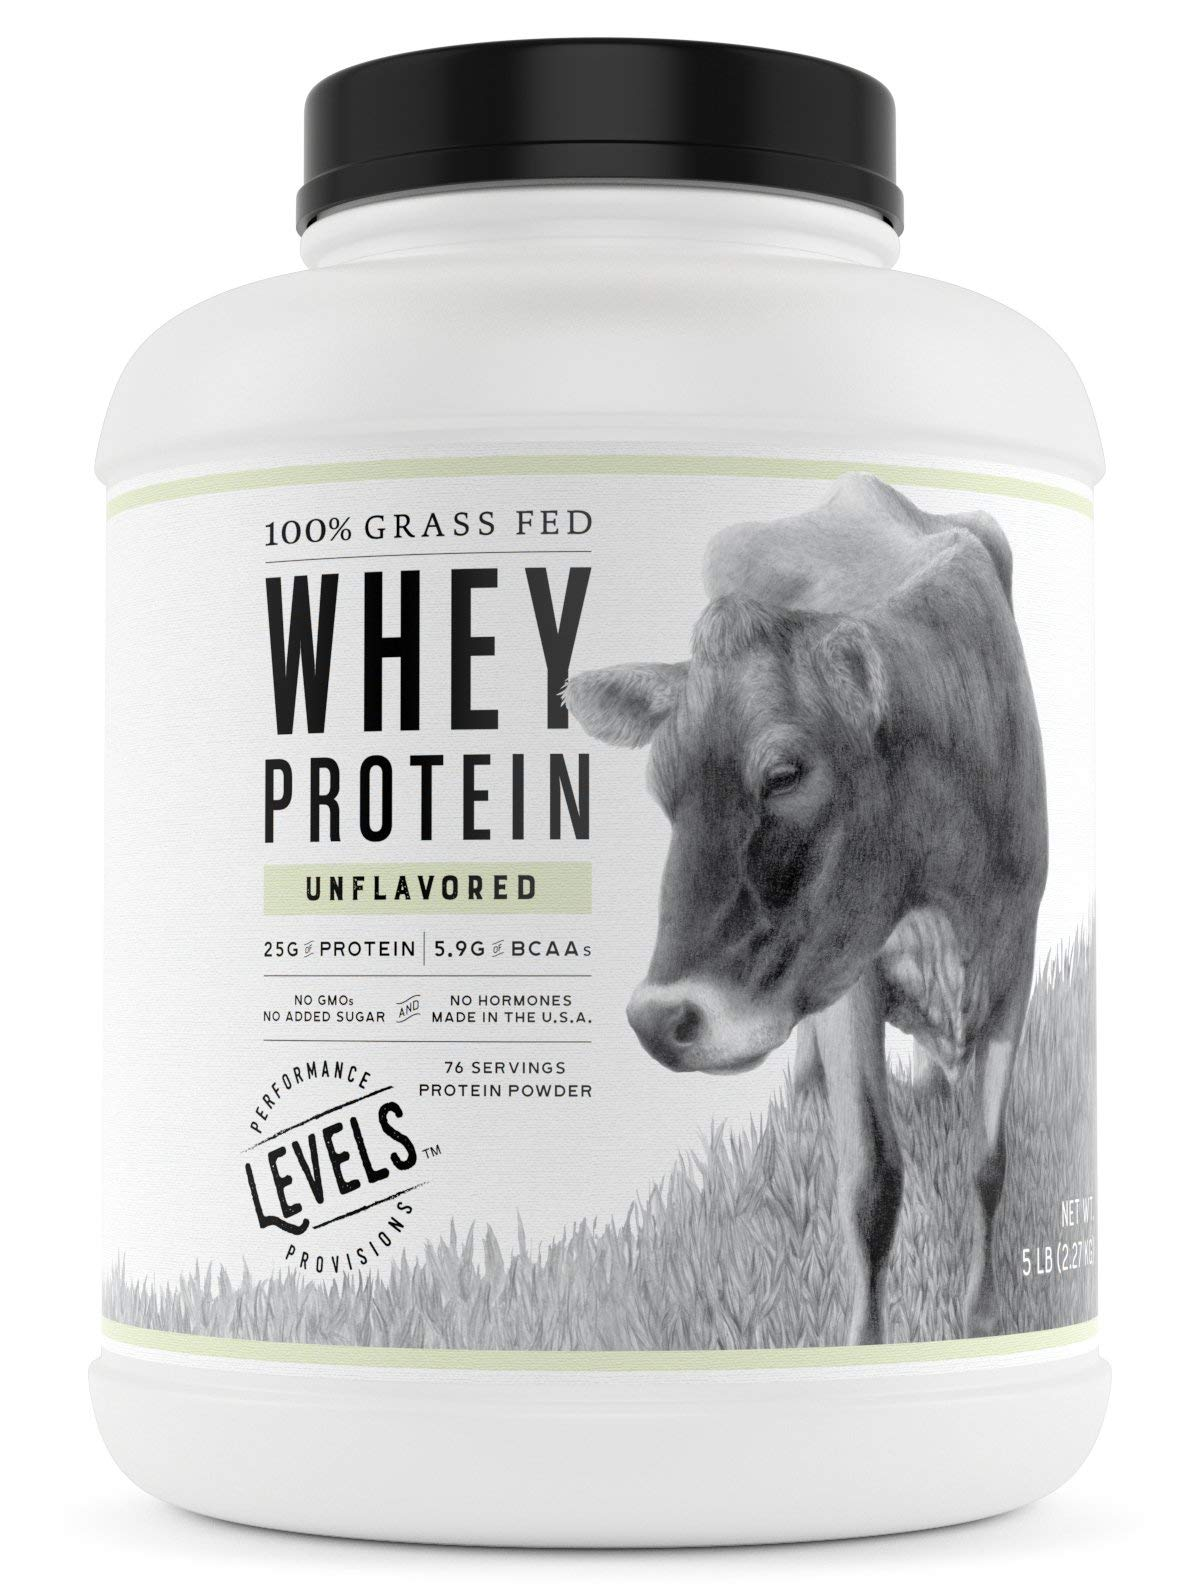 Levels 100% Grass Fed Whey Protein, No GMOs, Unflavored, 5LB by Levels Nutrition